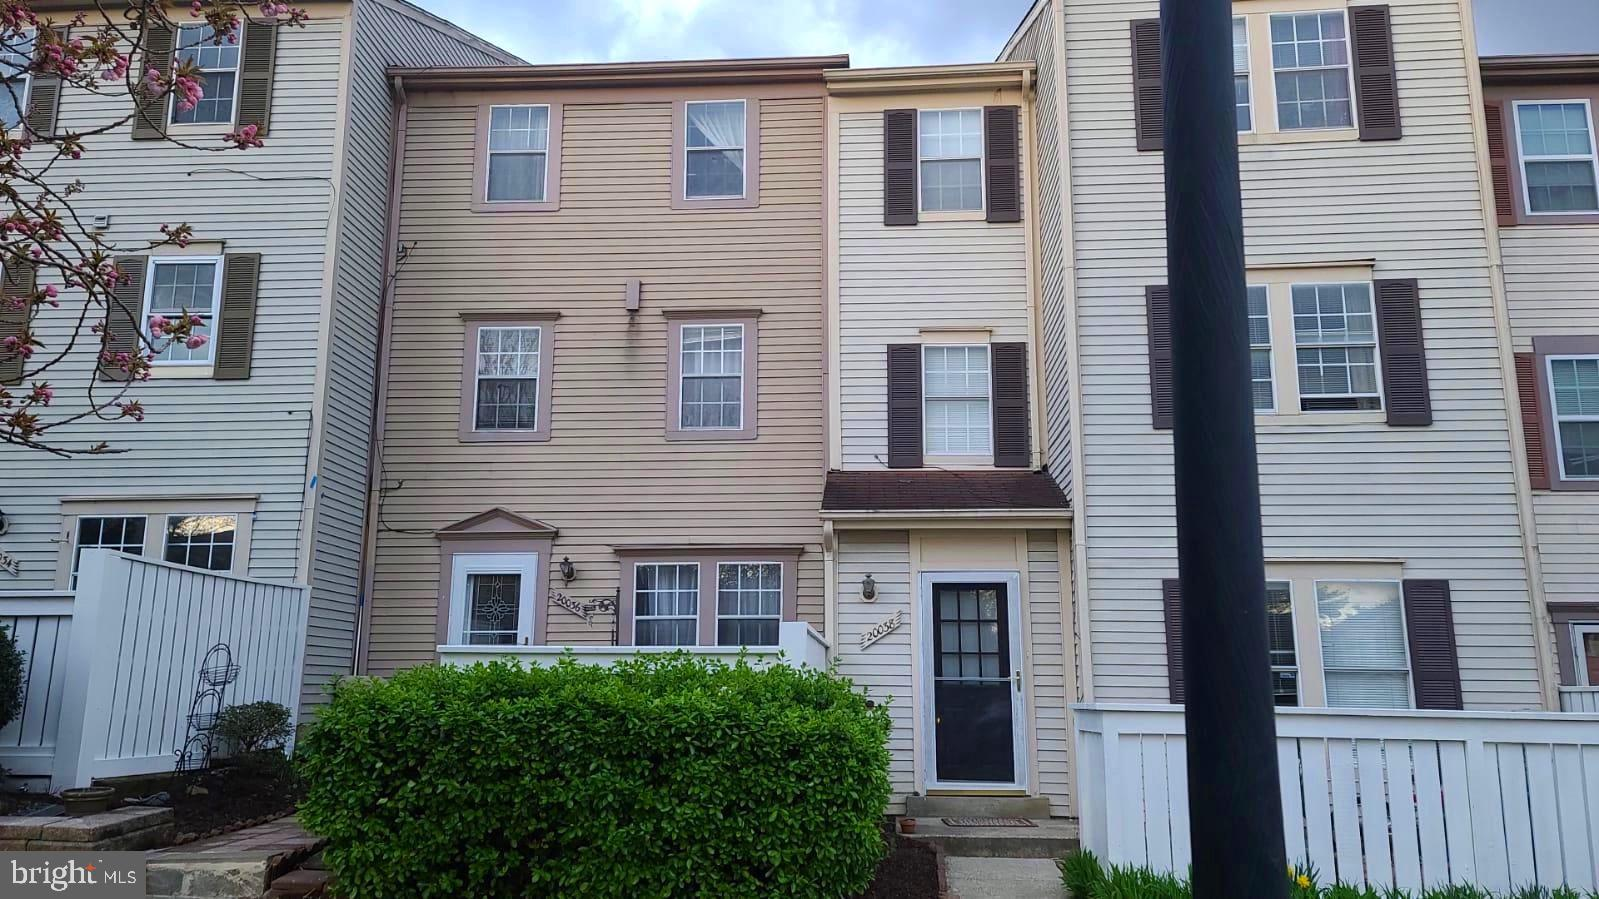 Come see this Beautiful and Charming home.  Less than 5 minutes from Montgomery College. Home is sol